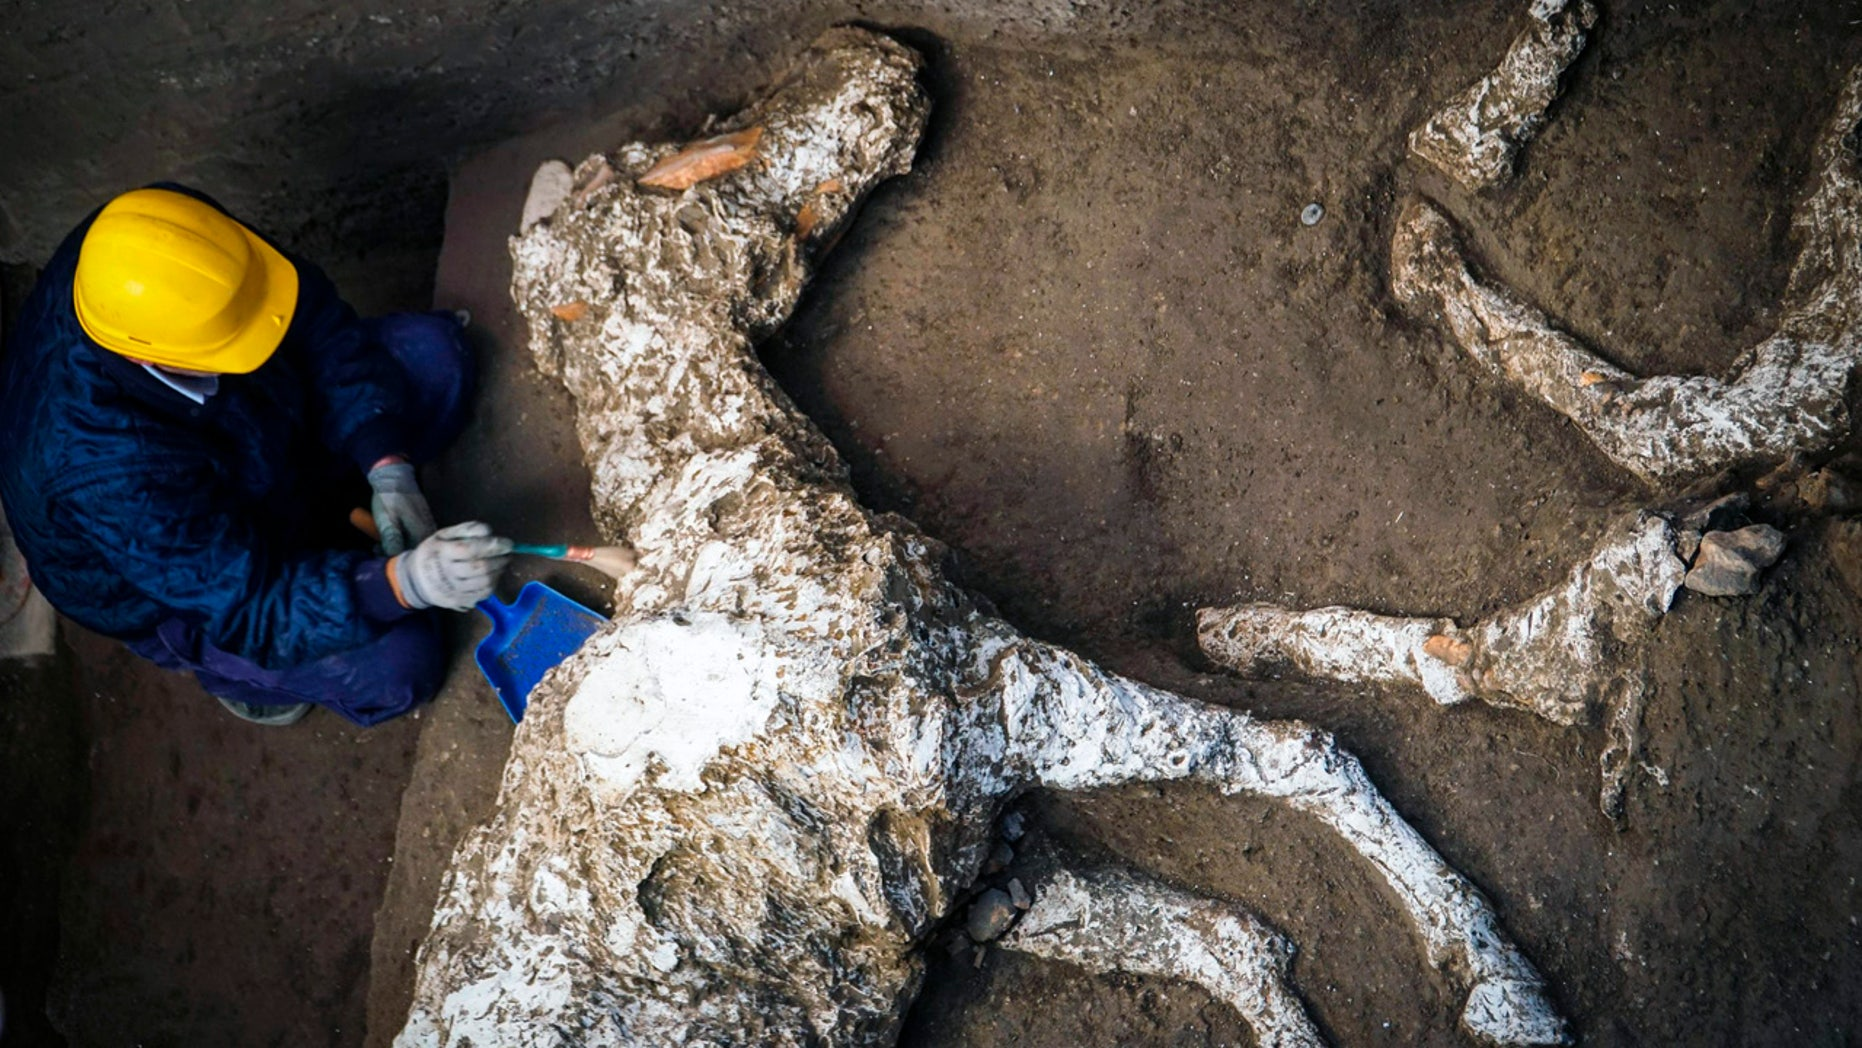 An archeologist inspects the remains of a horse skeleton on Sunday in the archeological site of Pompeii. (Cesare Abbate / ANSA Via AP)